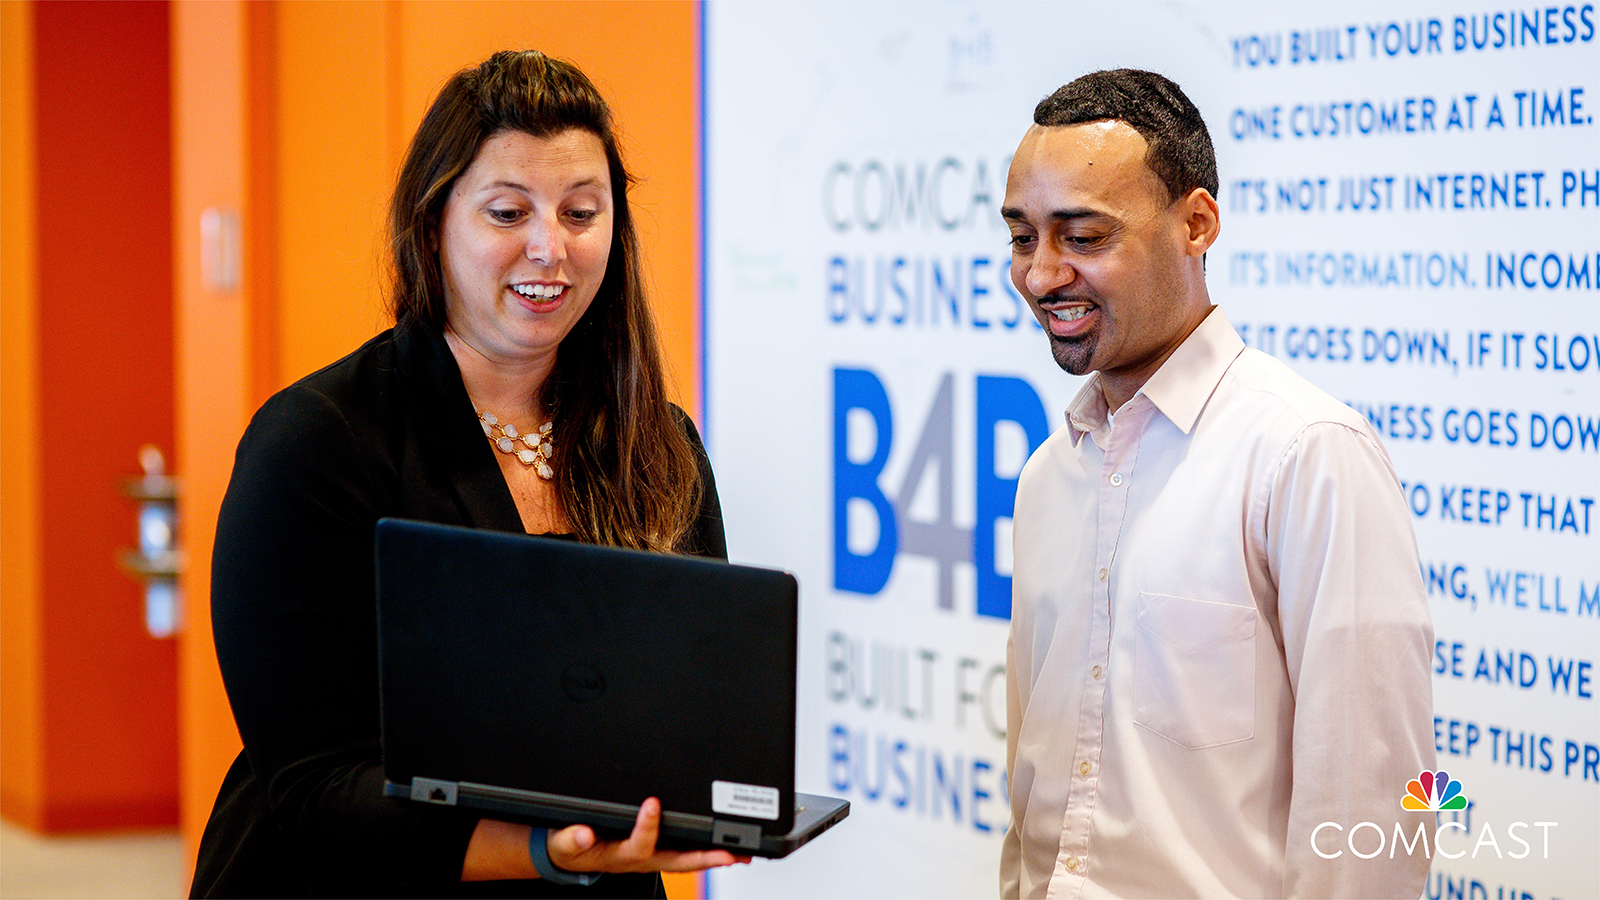 Woman showing a man something on her laptop as they stand in front of Comcast Business logo